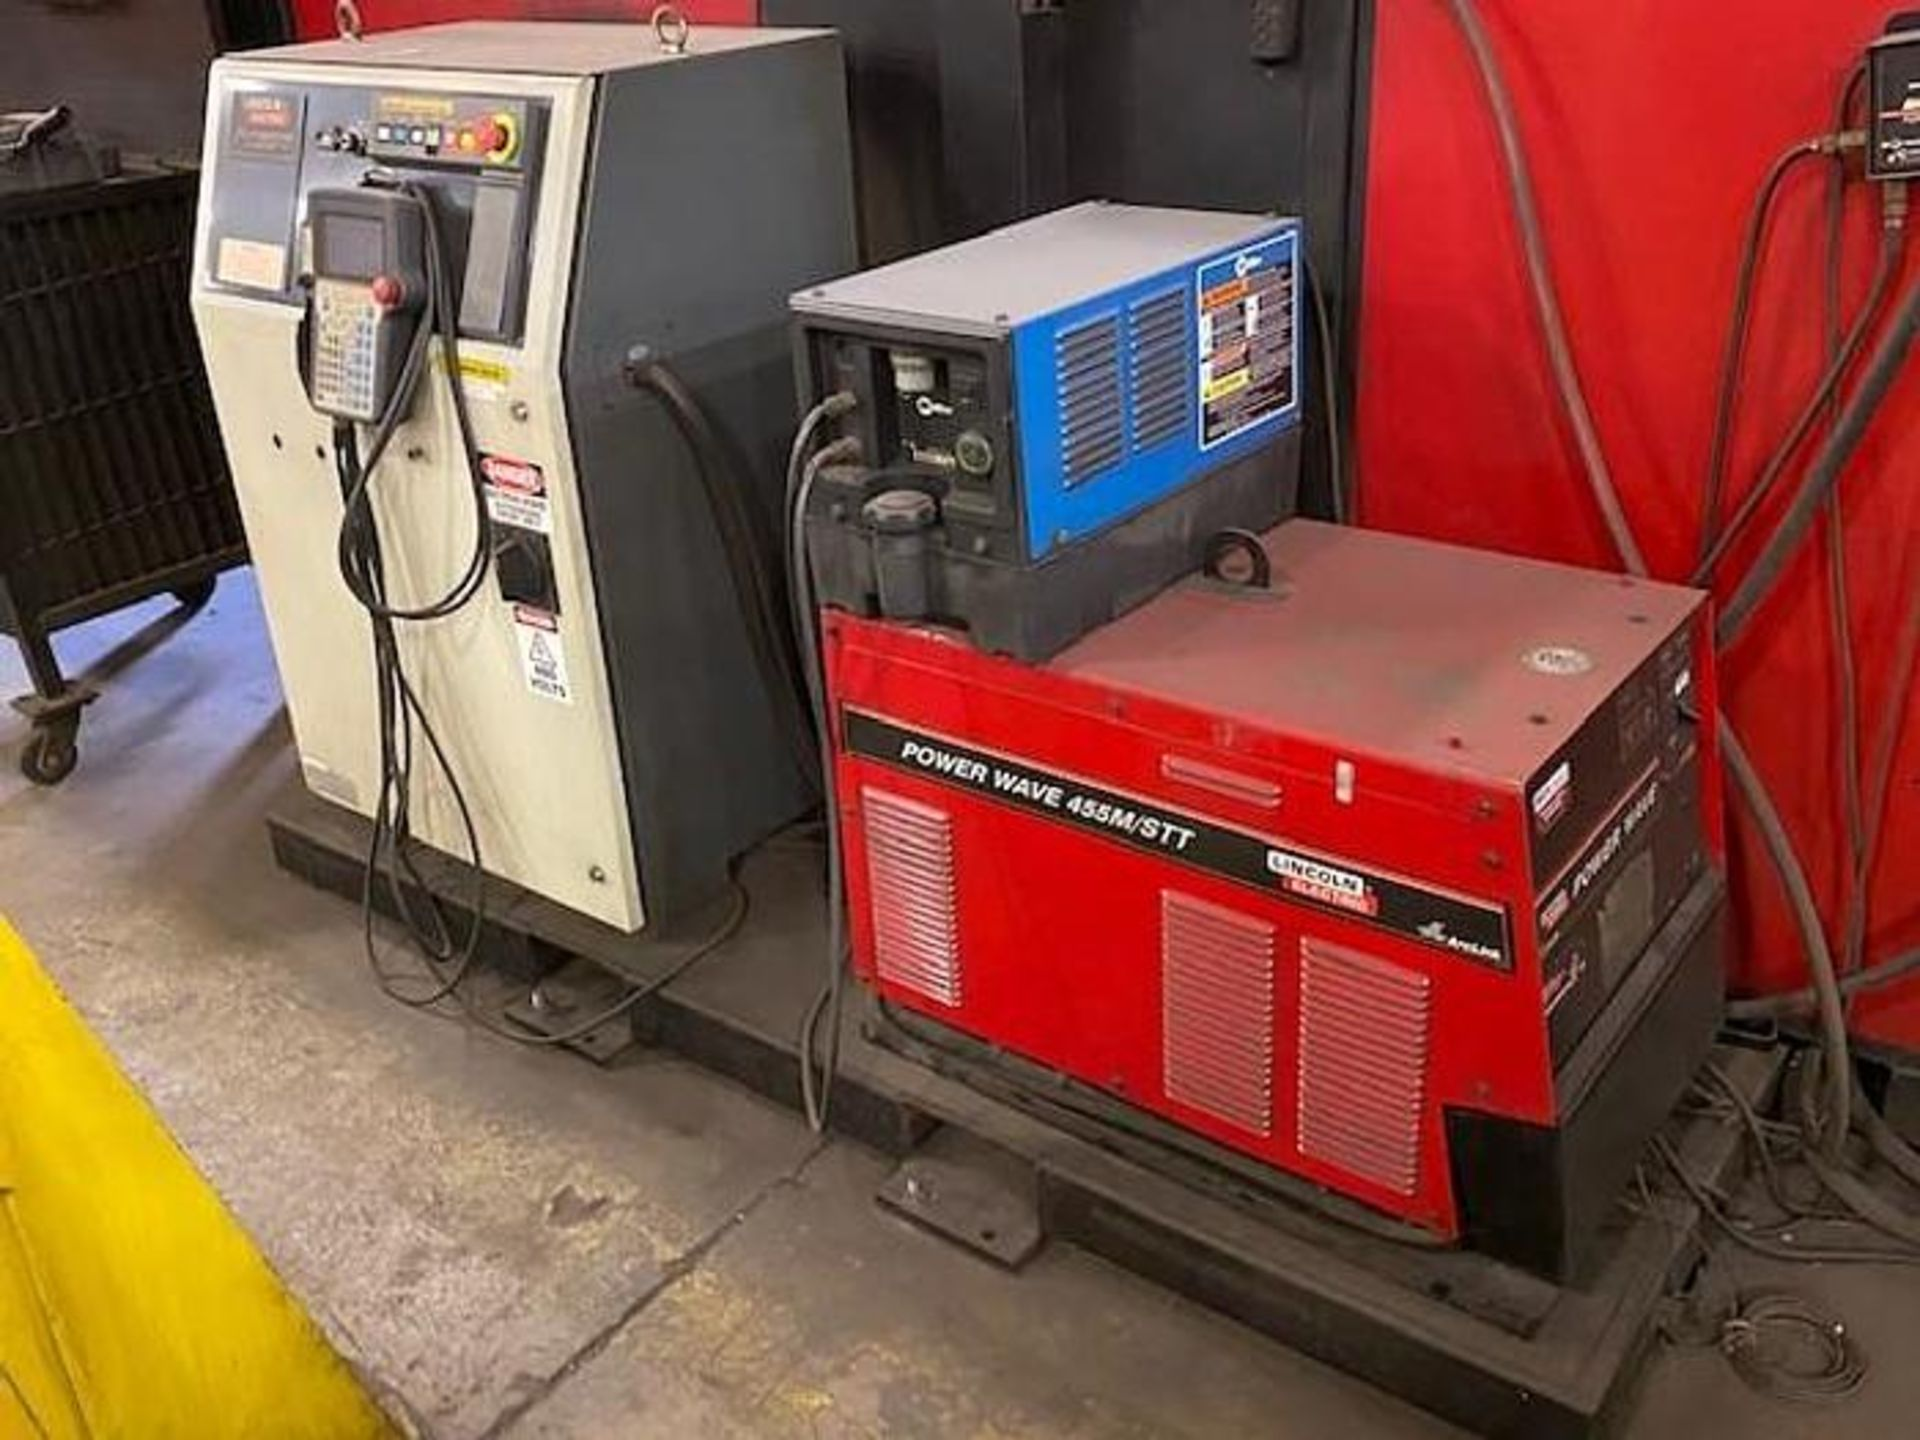 FANUC/LINCOLN DUAL TRUNION WELD CELL, FANUC ROBOT ARCMATE 120iB/10L WITH R-J3iB CONTROL - Image 5 of 11